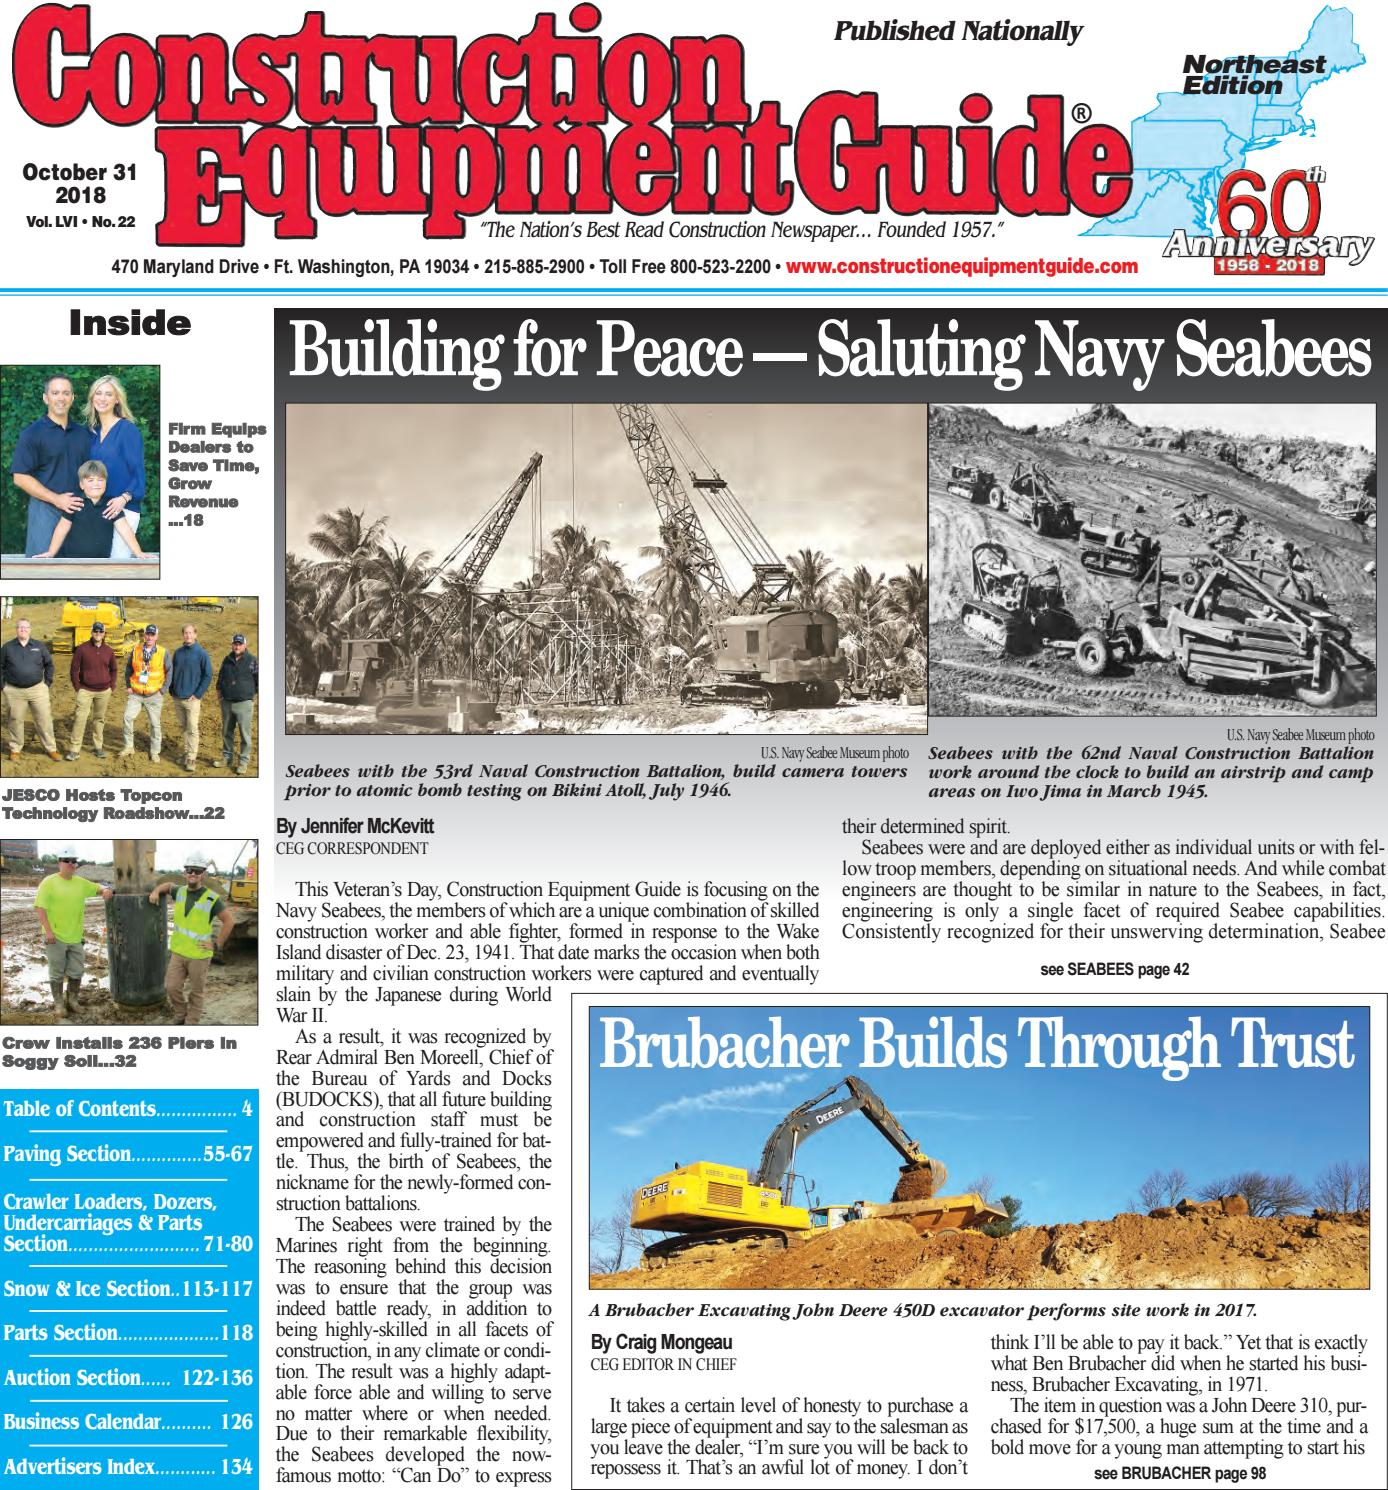 Northeast 22 October 31, 2018 by Construction Equipment Guide - issuu